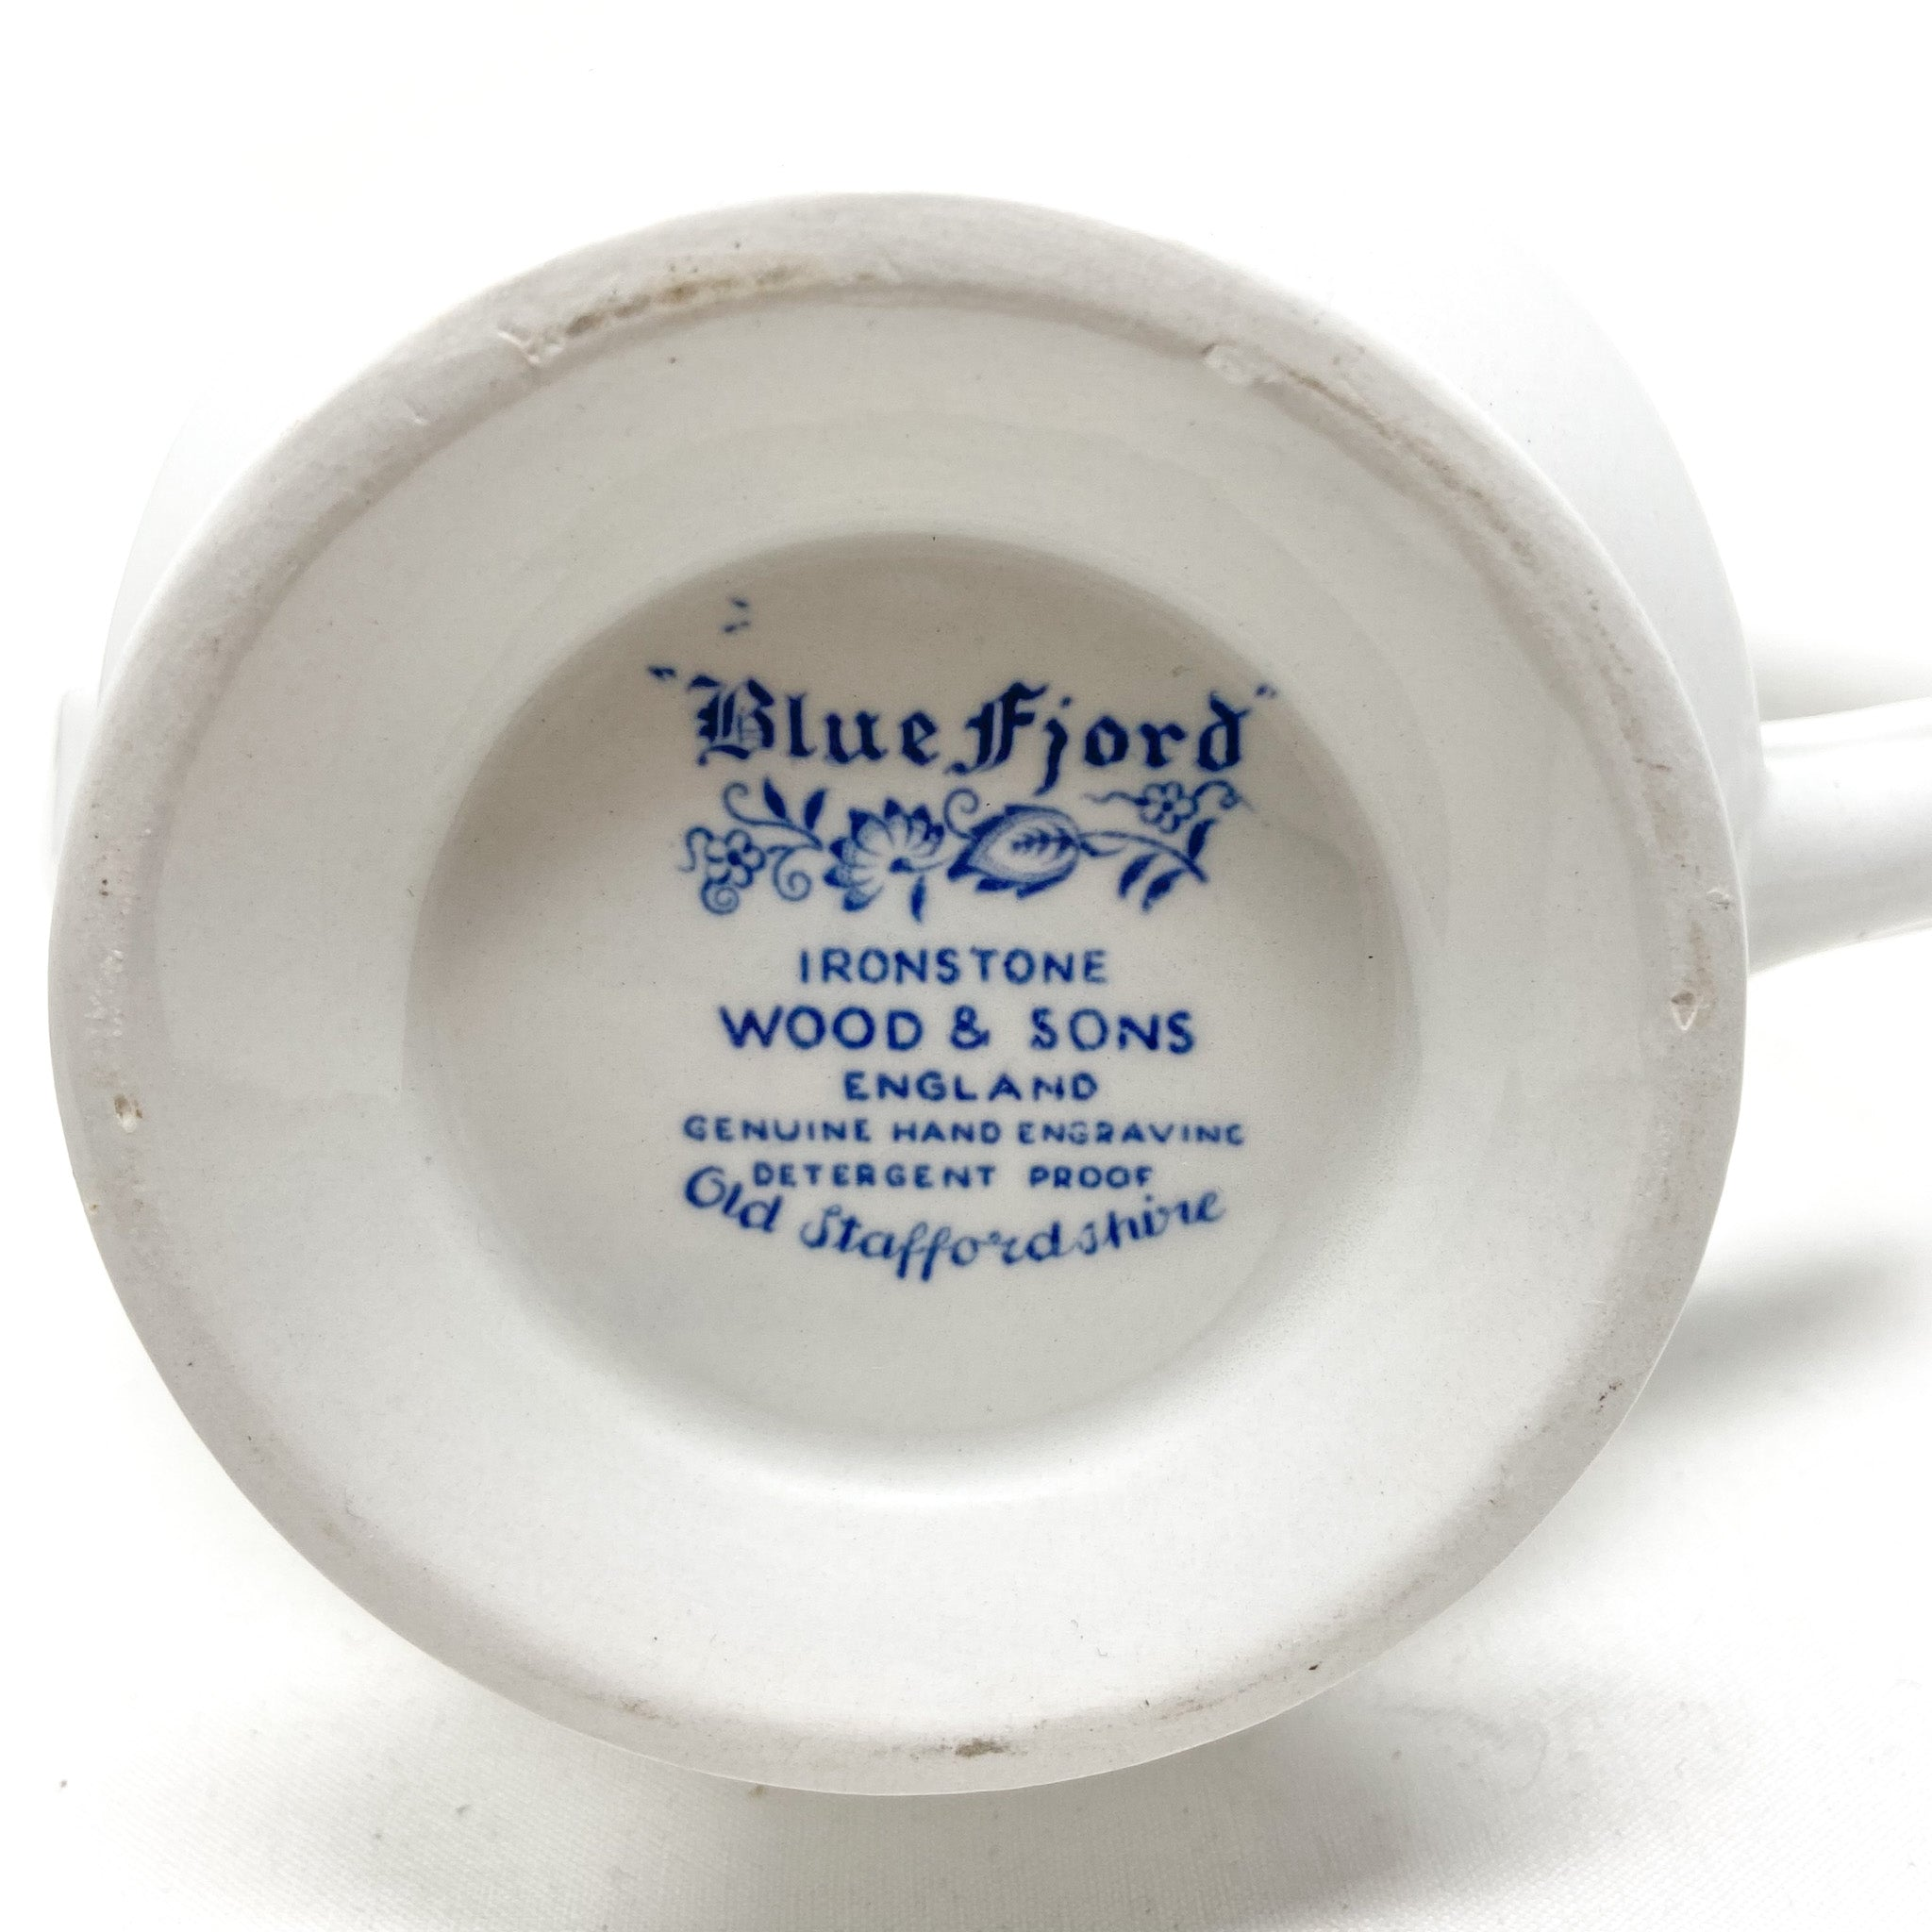 Blue Fjord Ironstone Wood & Sons England Genuine Hand Engraving Detergent Proof Old Staffordshire - stamp on bottom of coffeepot